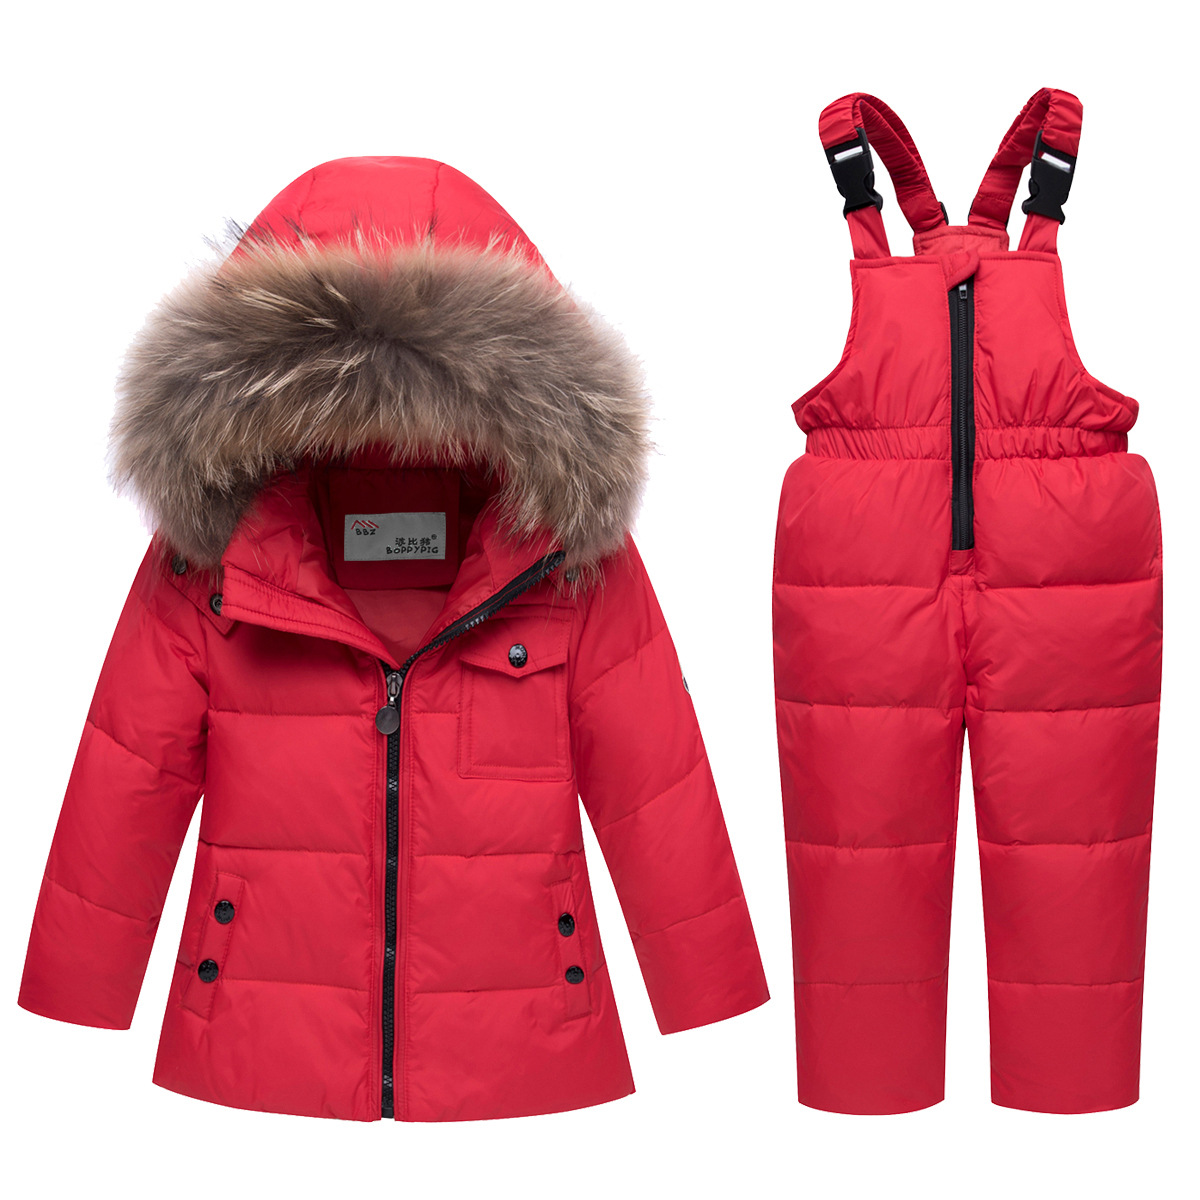 Russian Winter Suits For Boys Girls 2019 Ski Suit Children Clothing Set Baby Duck Down Jacket Coat + Overalls Warm Kids Snowsuit